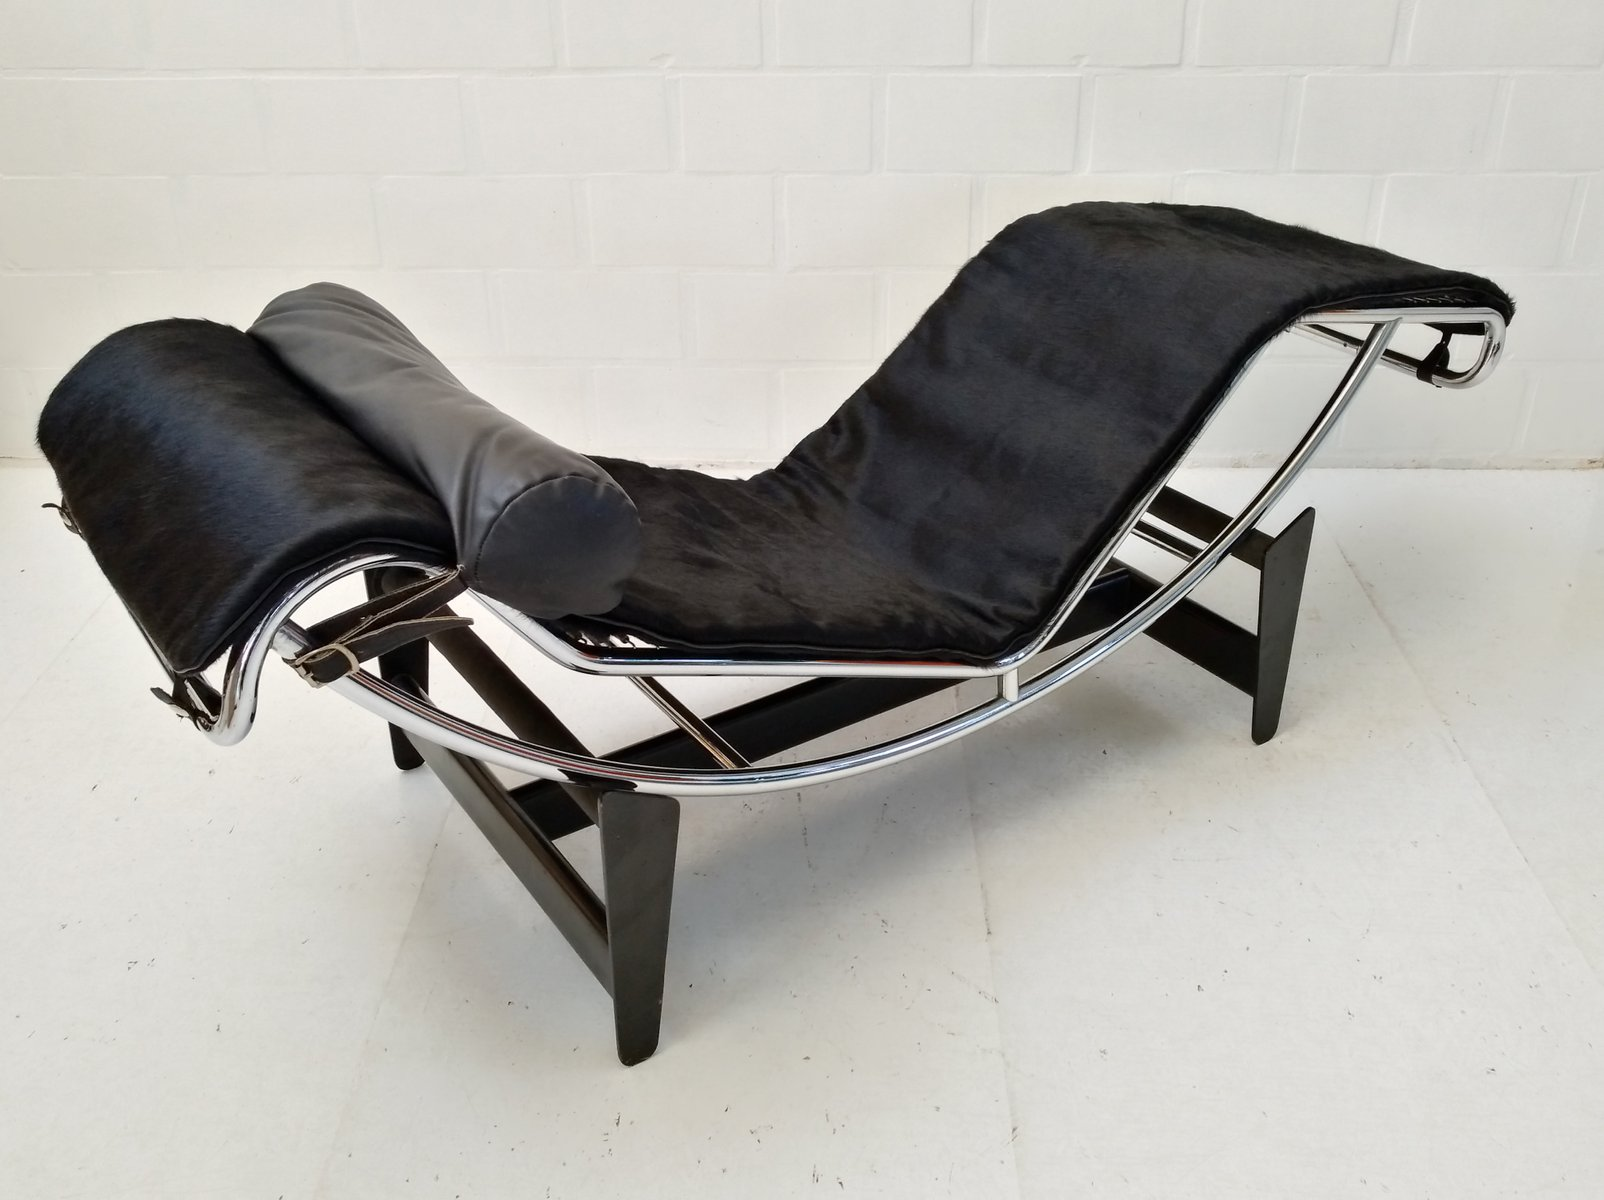 Early lc4 chaise longue by le corbusier perriand for Chaise longue le corbusier pony